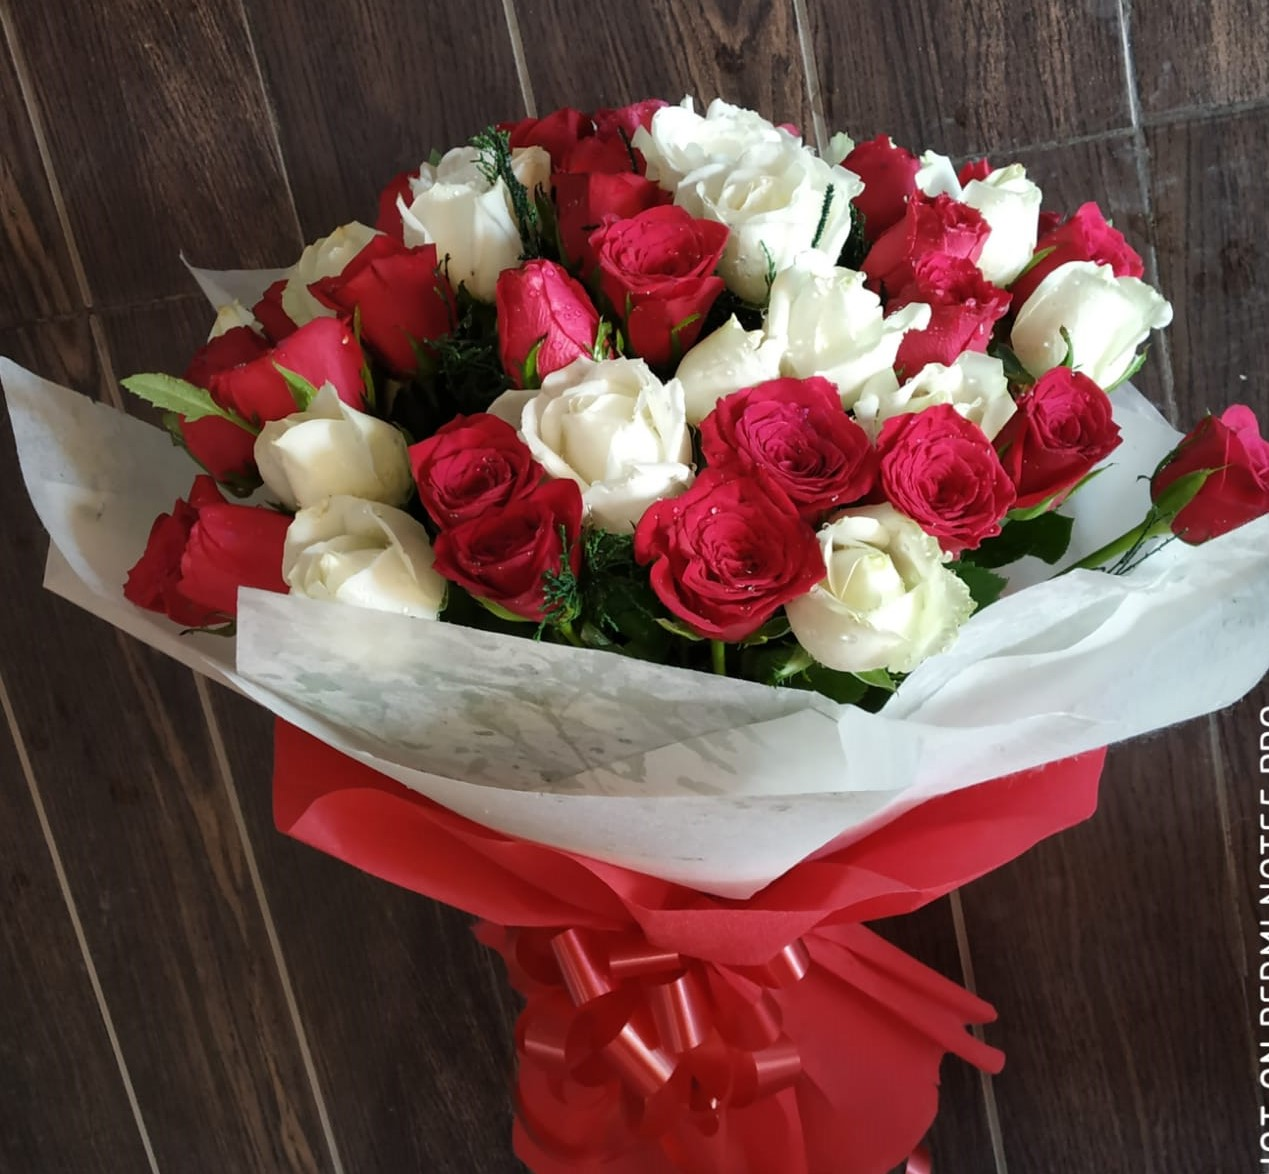 Flowers Delivery in Sector 53 GurgaonRed & White Roses in Duble Layer Packing